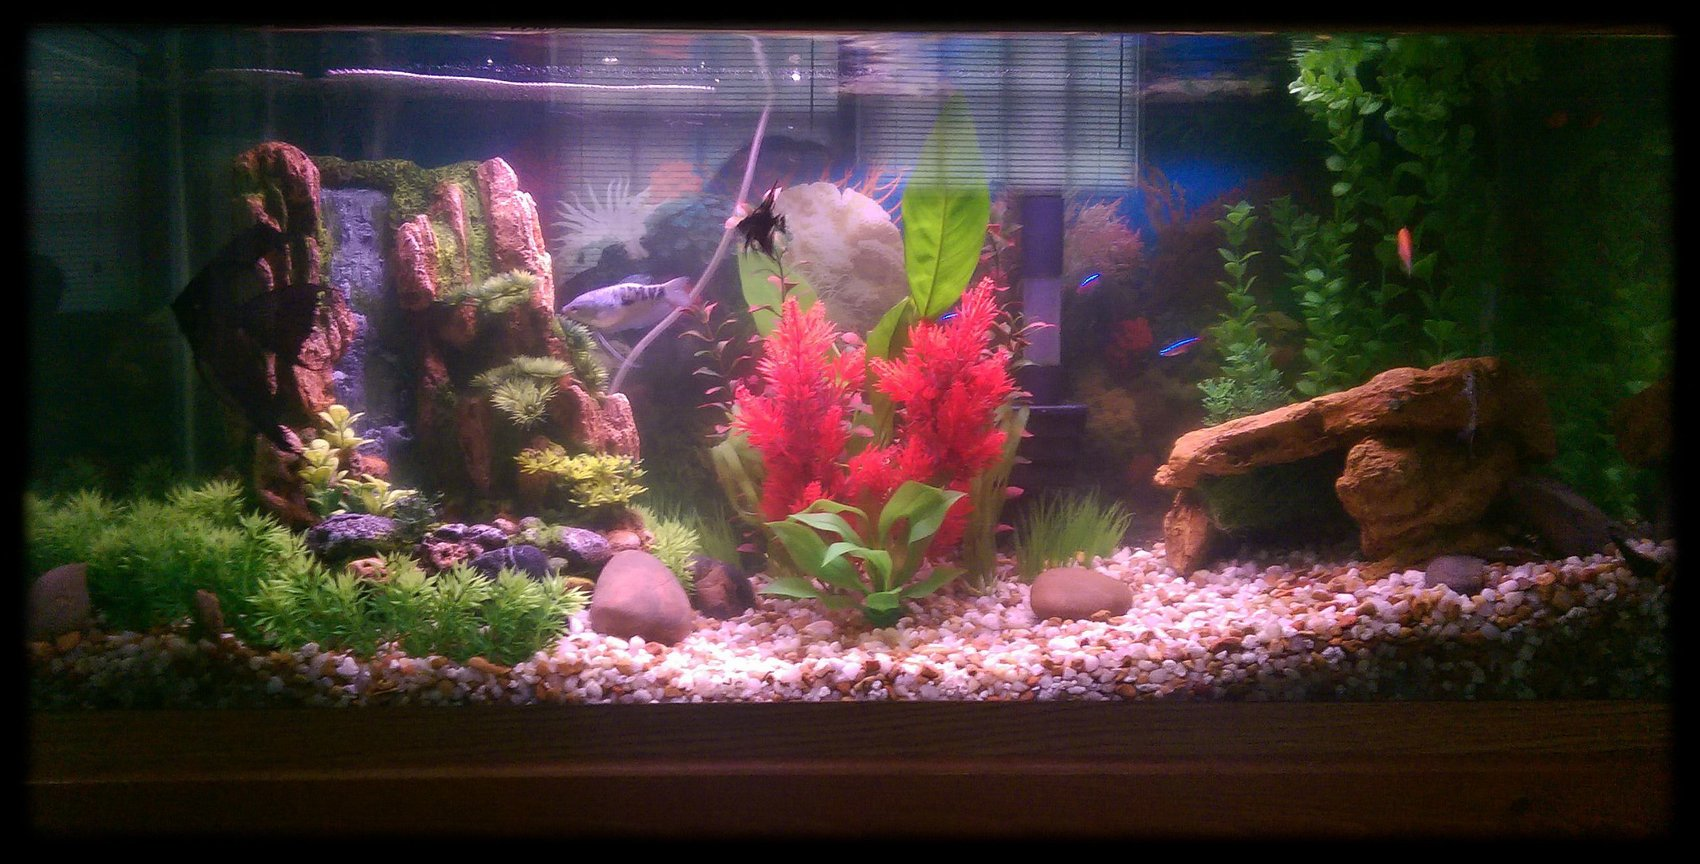 30 gallons planted tank (mostly live plants and fish) - My 30 gallon aquarium with various fish and assorted live plants and plastic plants with aquarium decor!